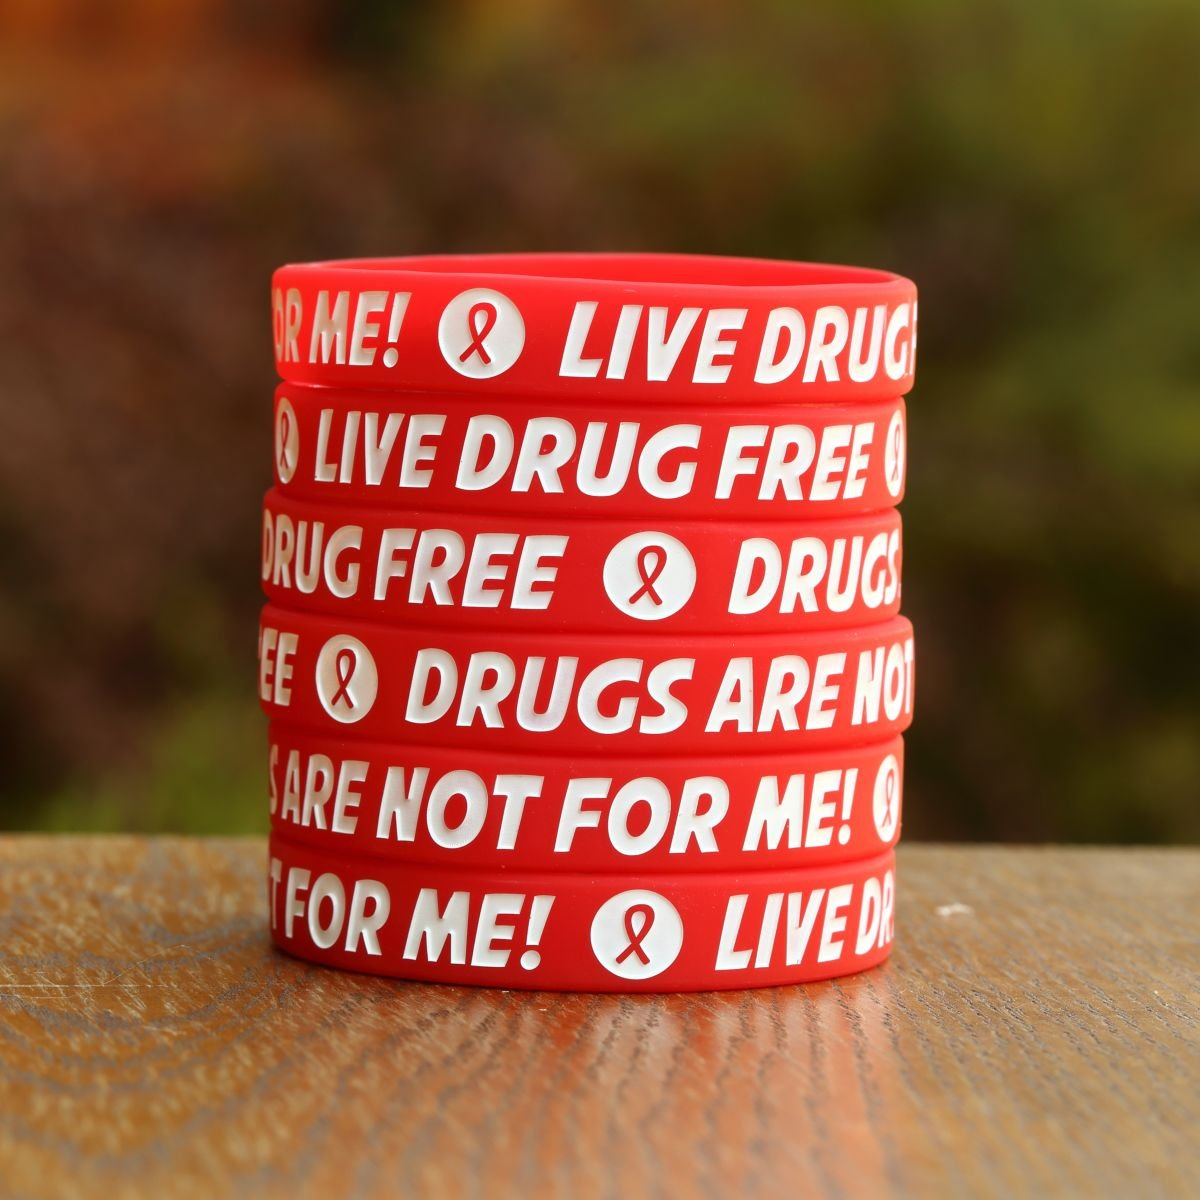 200 Red Child Size Live Drug Free Bracelets - Red Ribbon Week Wristbands by SayitBands (Image #3)